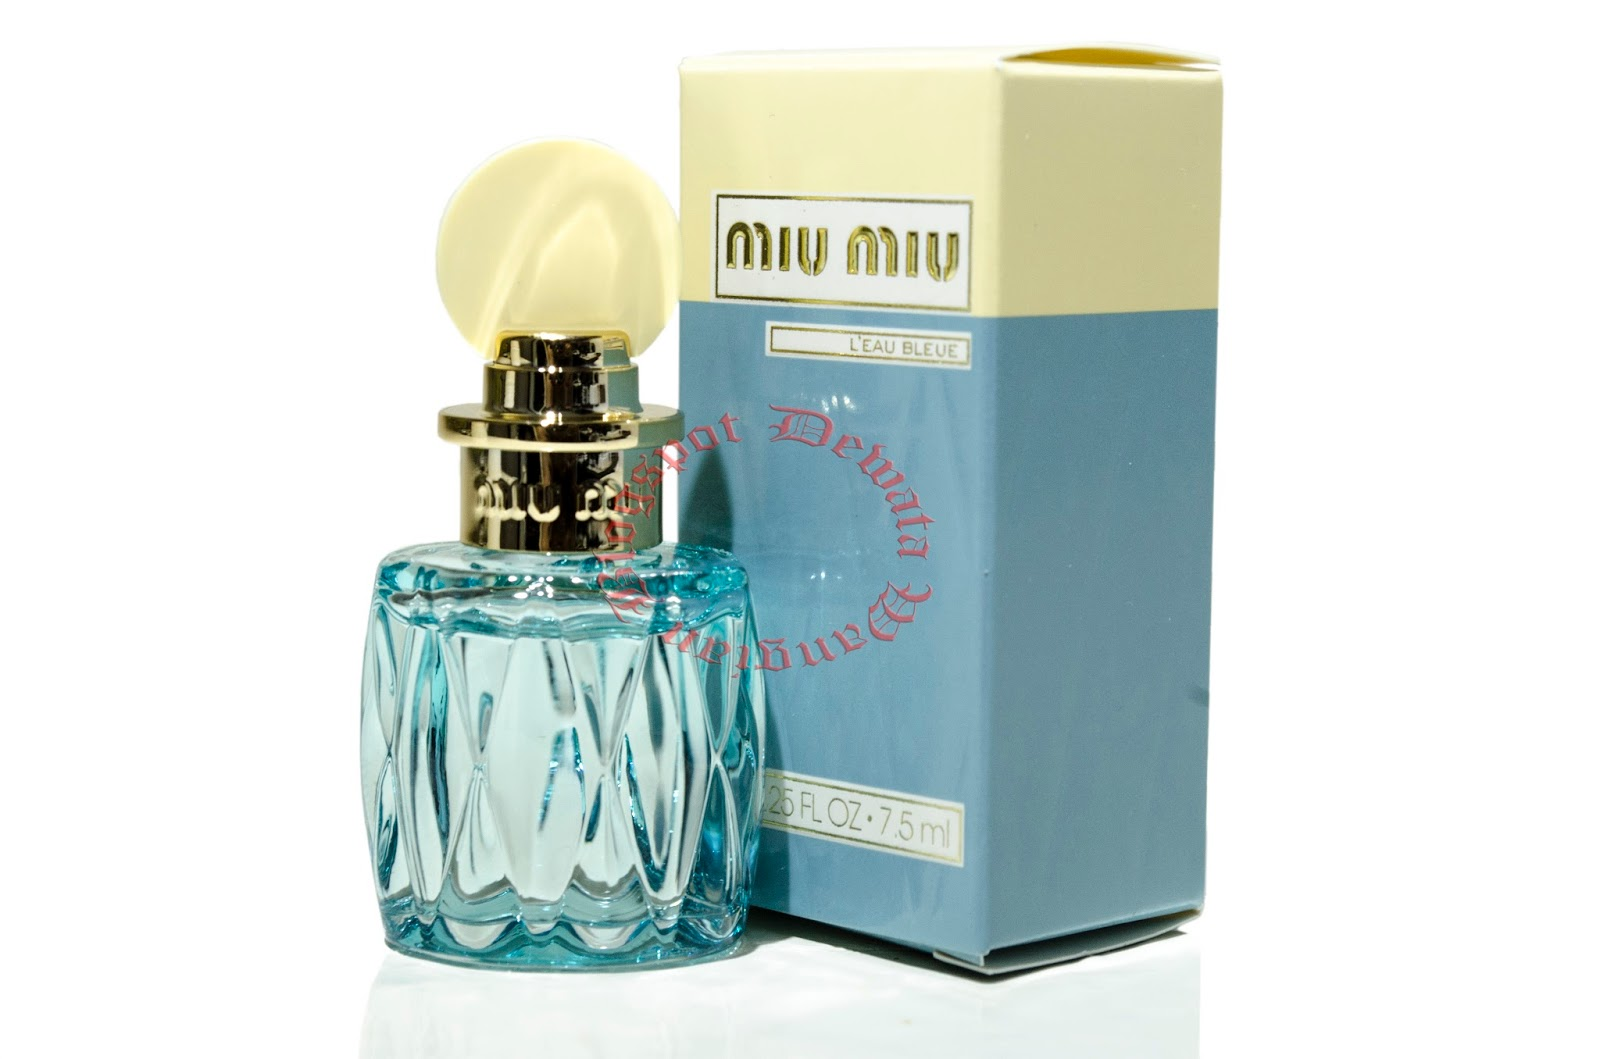 Launched in 2016, the new Miu Miu fragrance captures the light, airy and  very joyful scent of morning dew in the lily of the valley bells. a7999d9c54